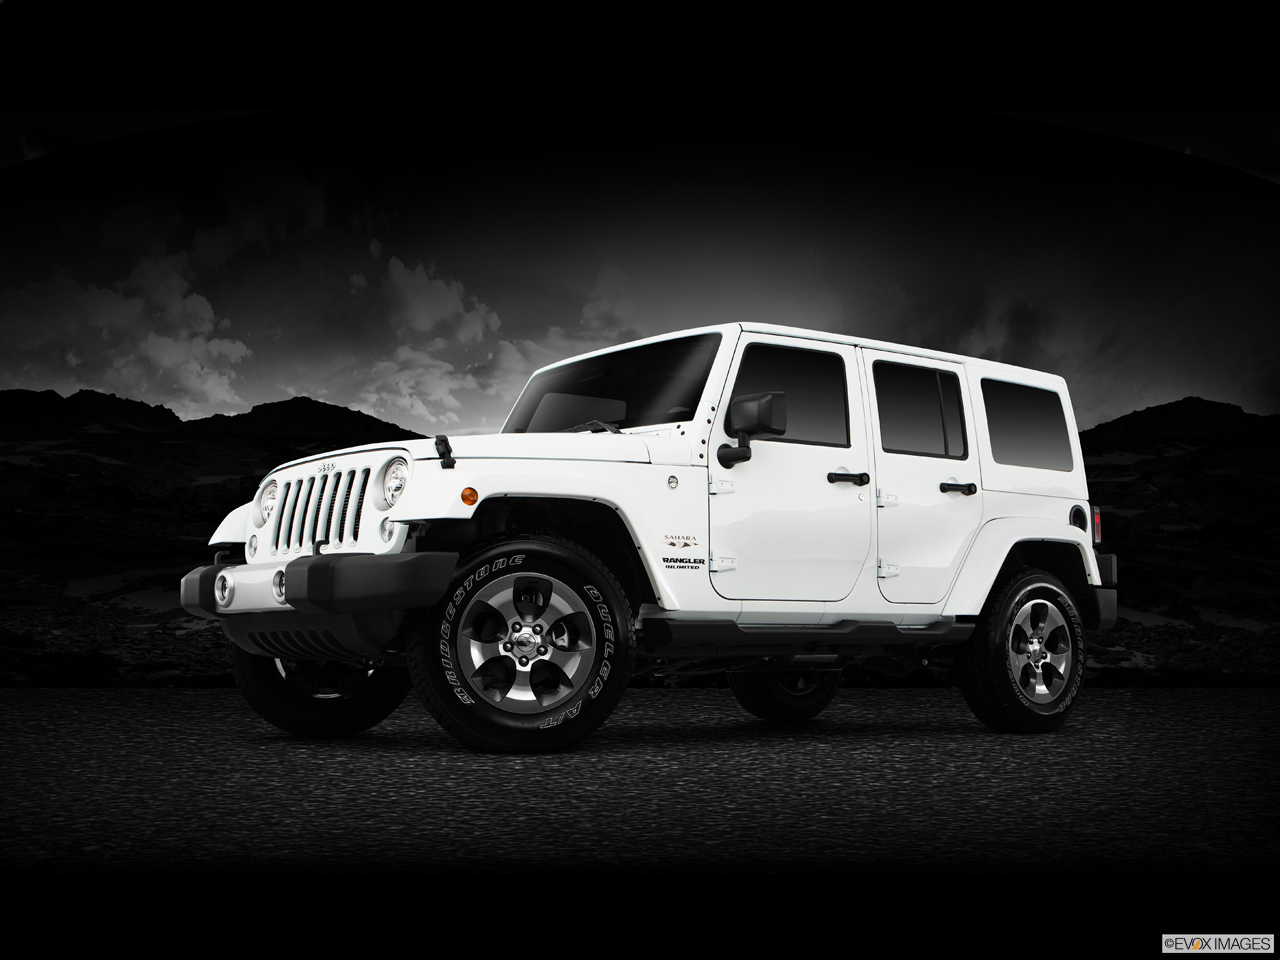 2017 jeep wrangler unlimited model overview new jeep wrangler unlimited for sale near. Black Bedroom Furniture Sets. Home Design Ideas